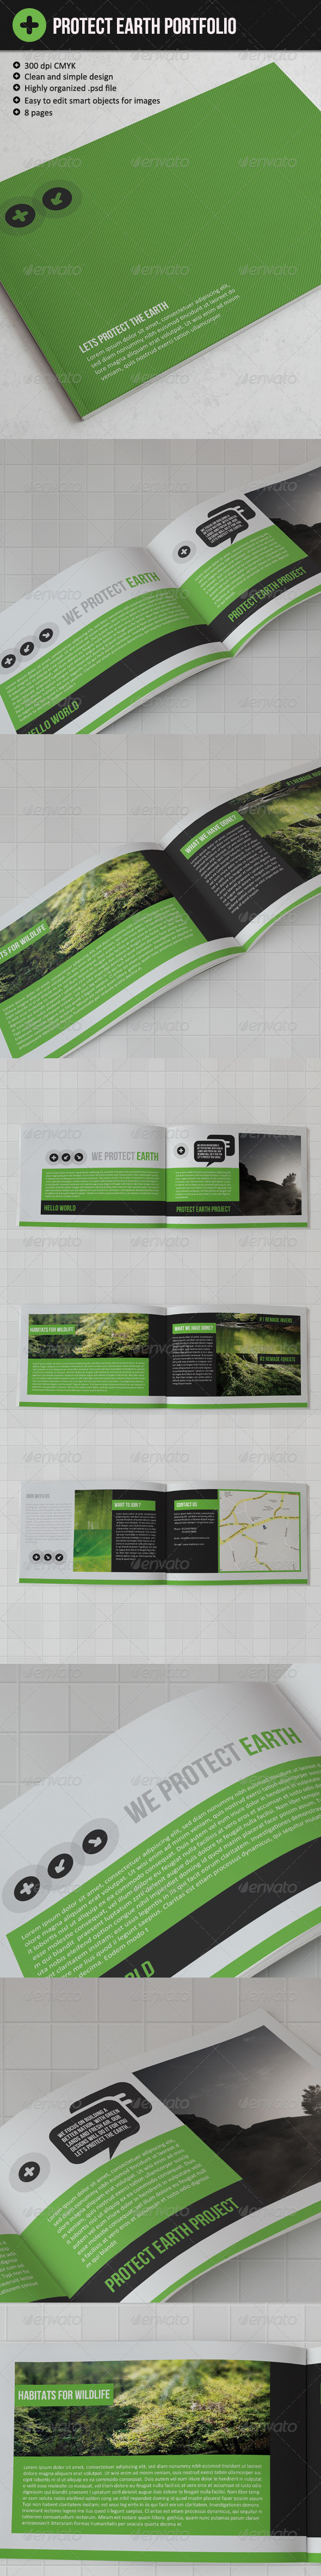 Protect The Earth Brochure  - Brochures Print Templates